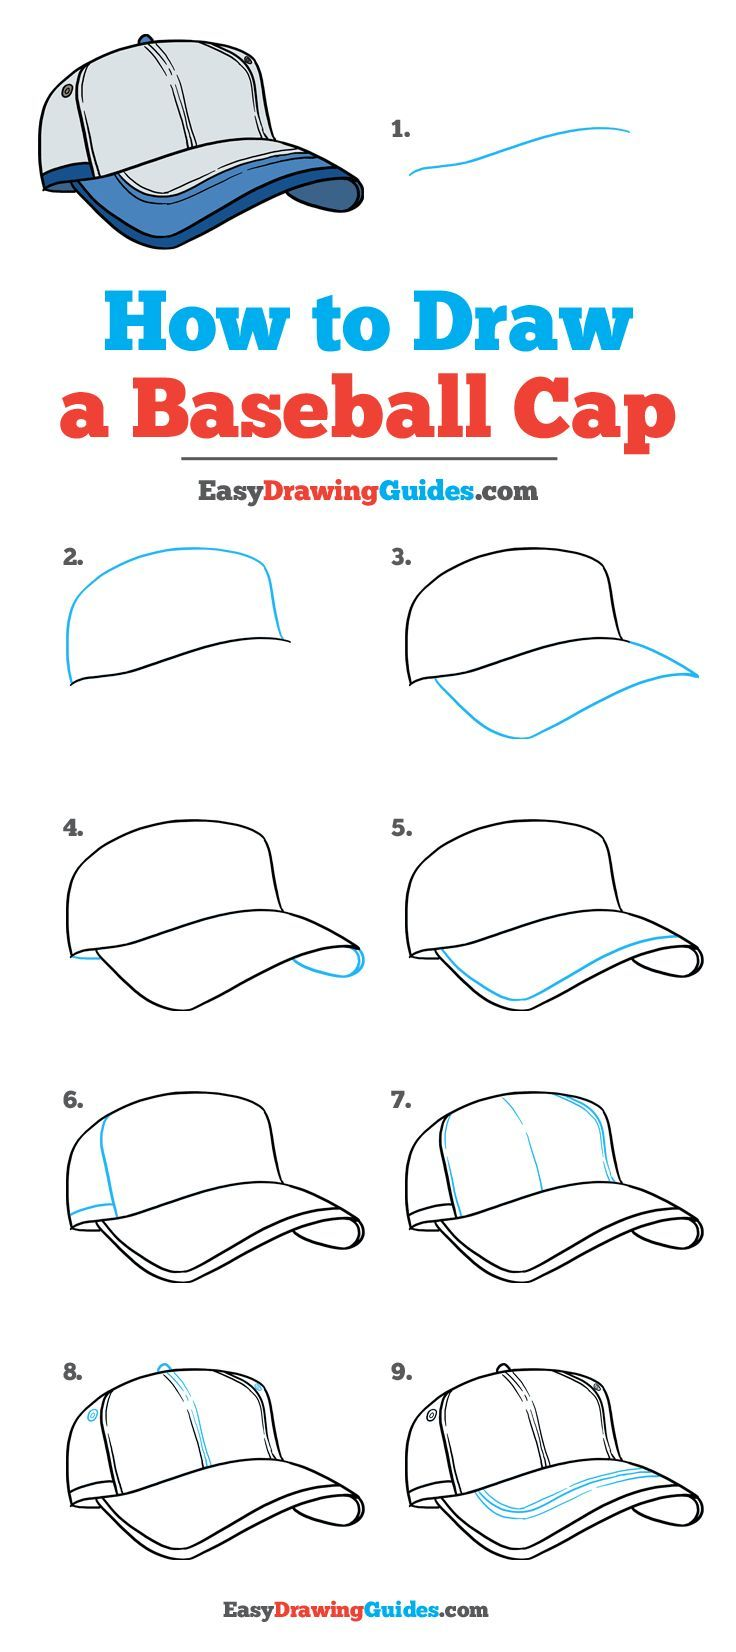 How to Draw a Baseball Cap - Really Easy Drawing Tutorial